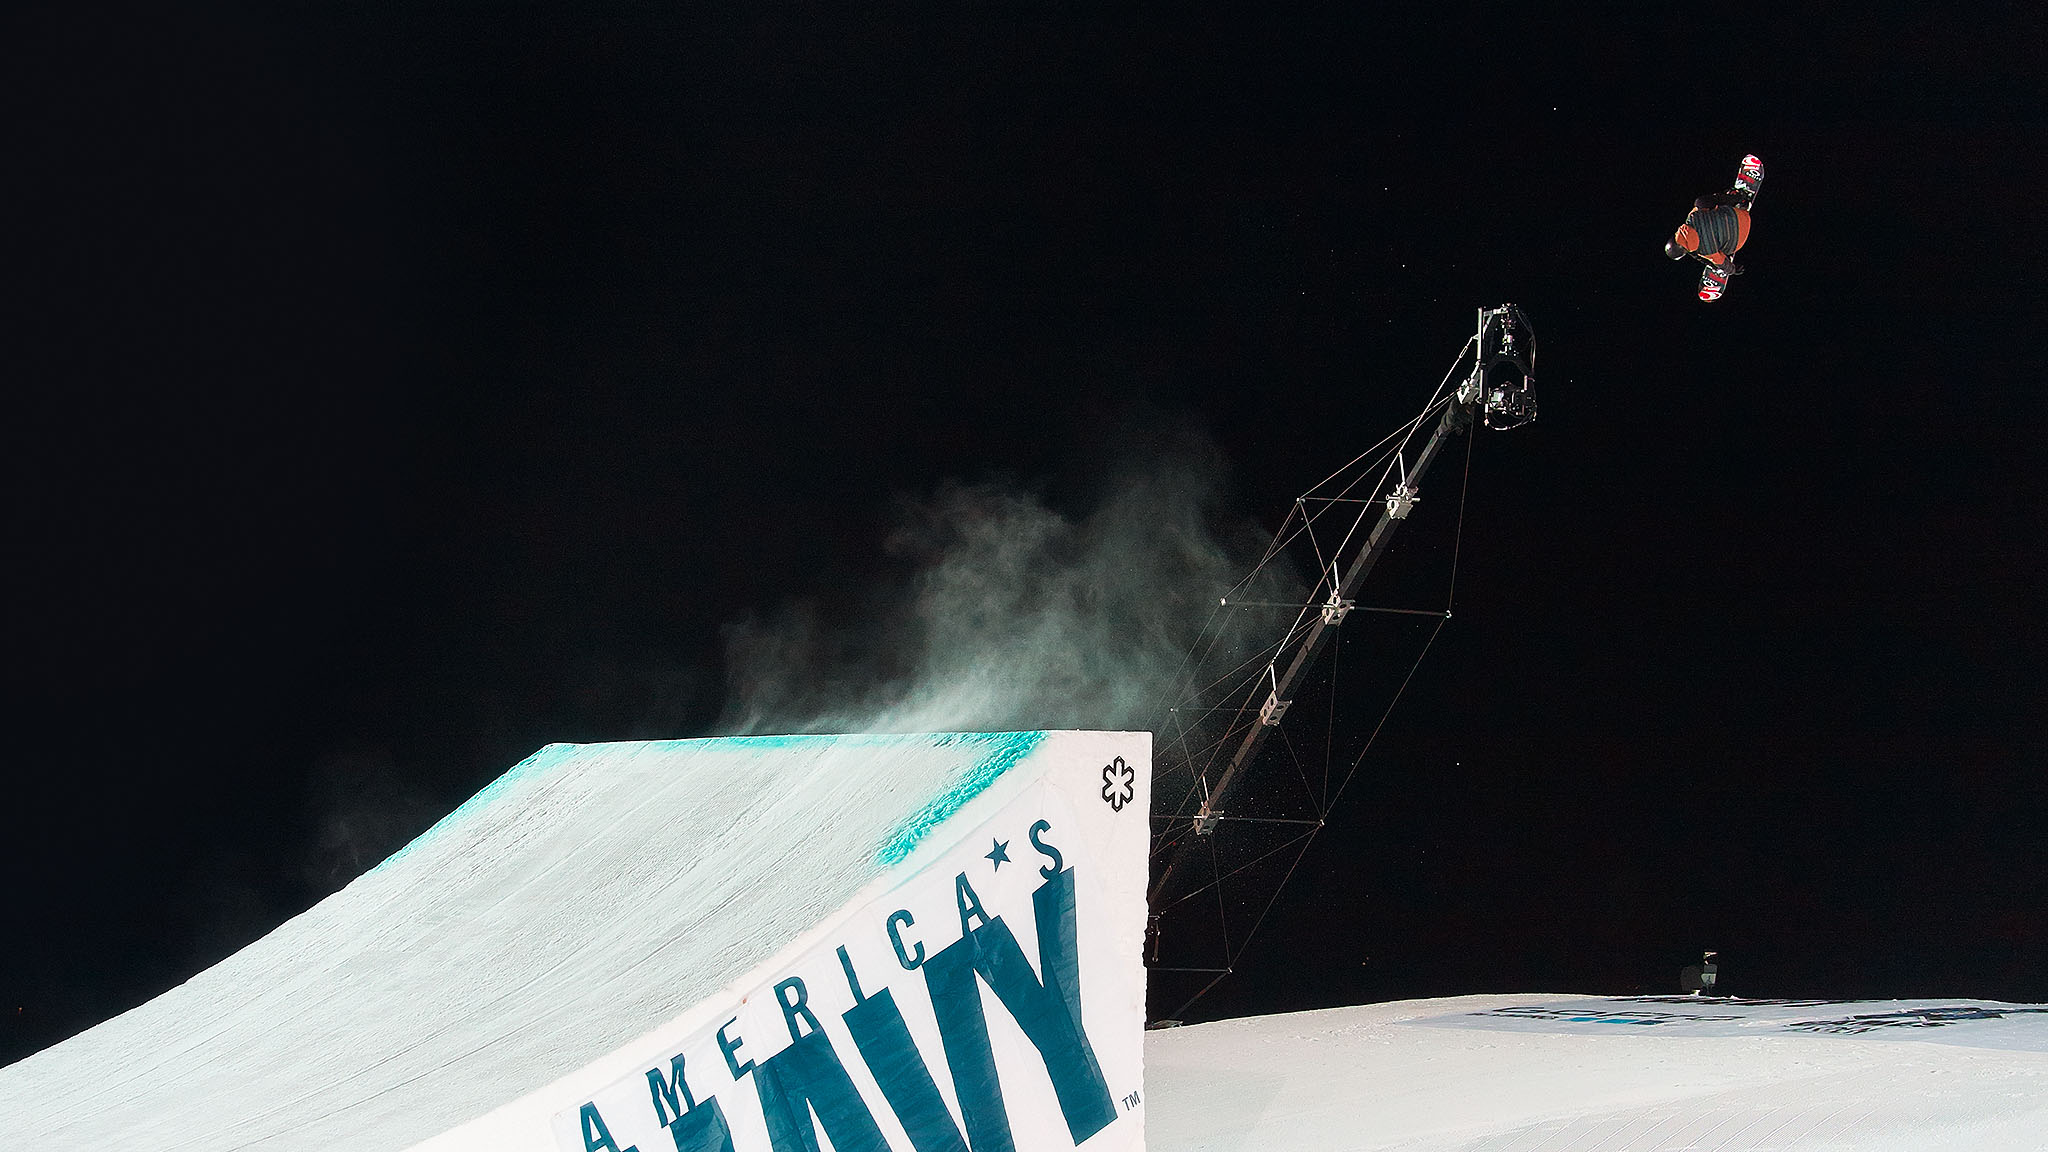 Max Parrot rode to victory in Snowboard Big Air on Friday.